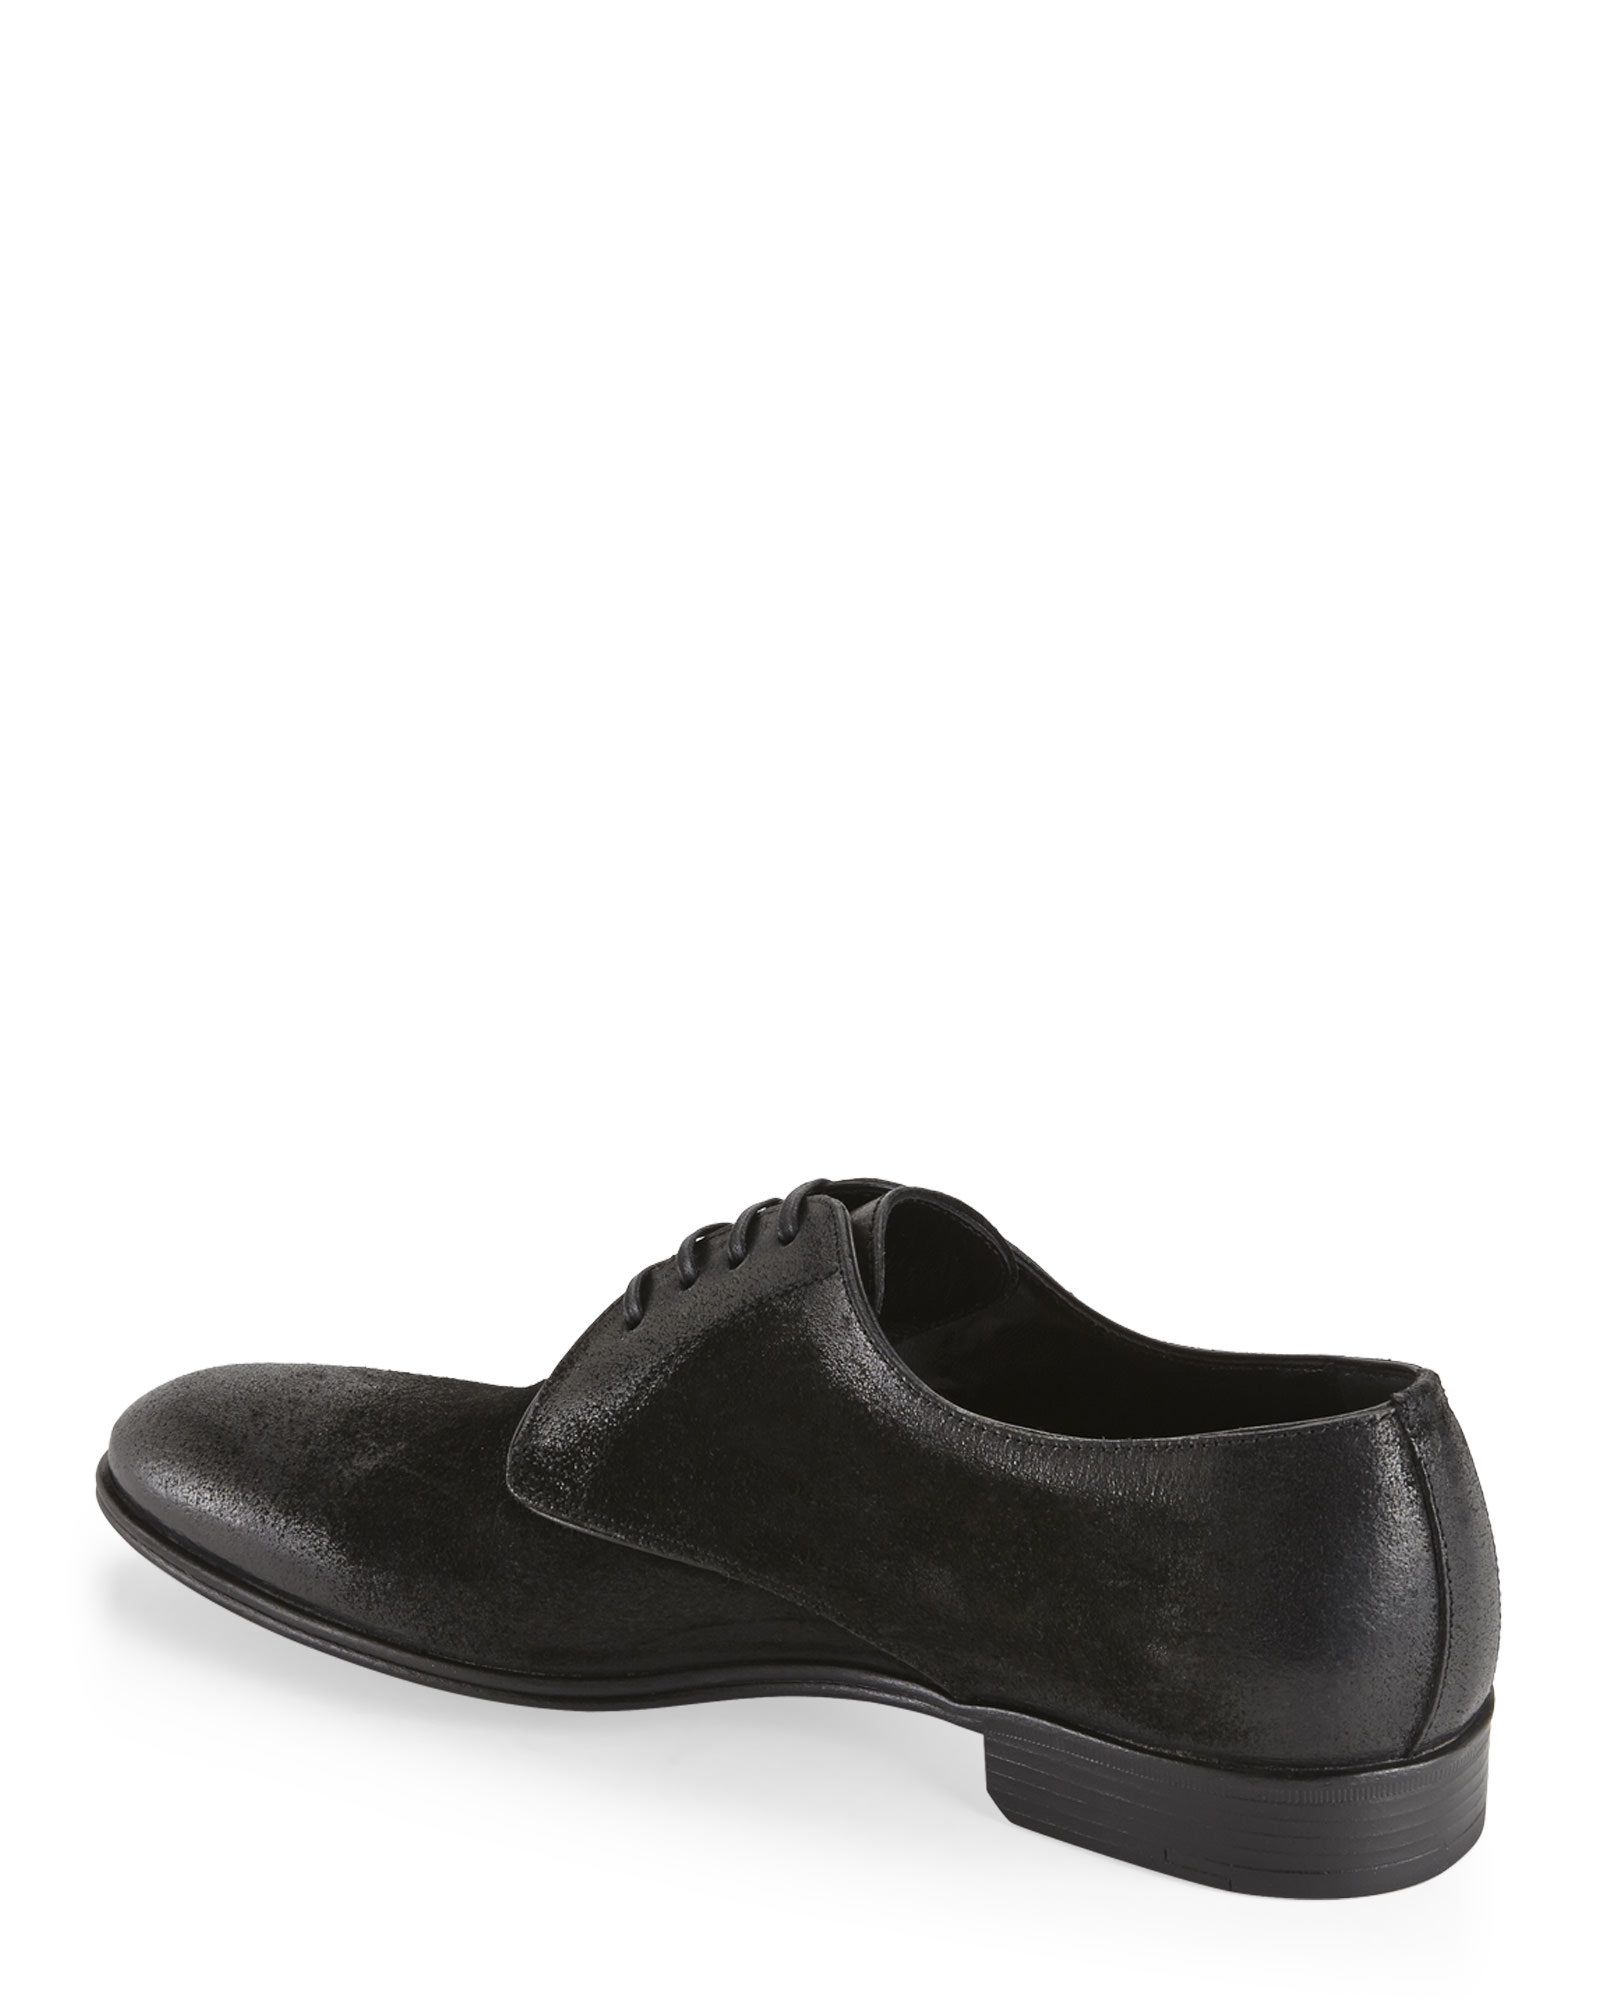 Dolce & Gabbana distressed derby shoes discount popular discount top quality lowest price for sale sale Cheapest DYUZmZ78eU